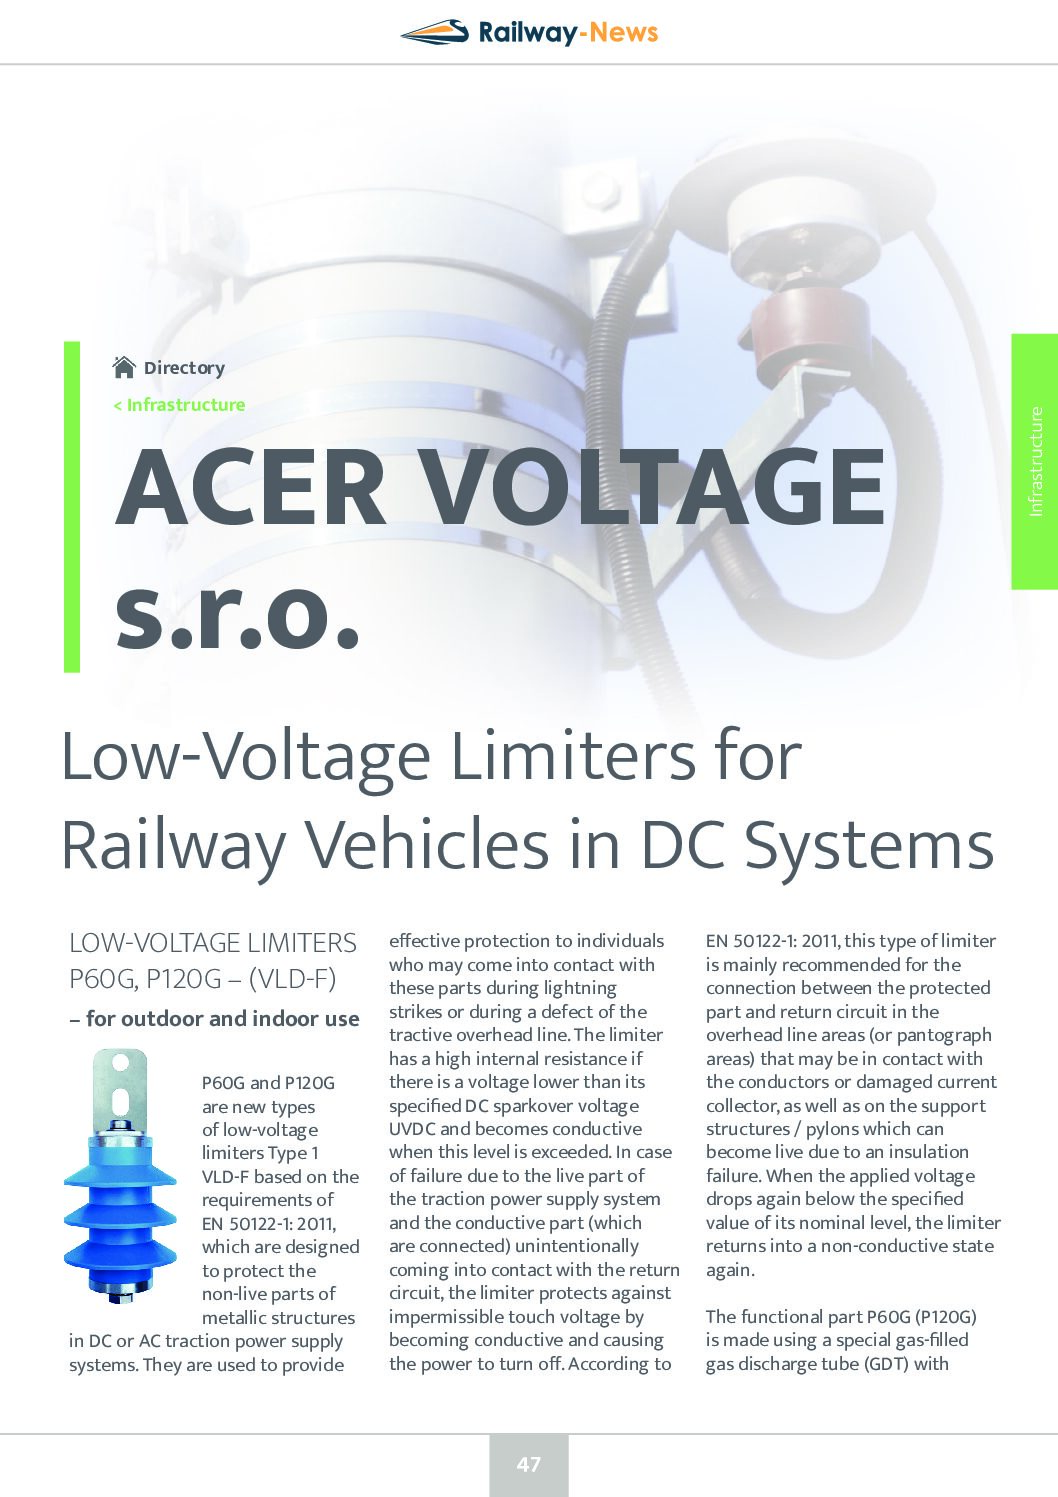 Low-Voltage Limiters for Railway Vehicles in DC Systems